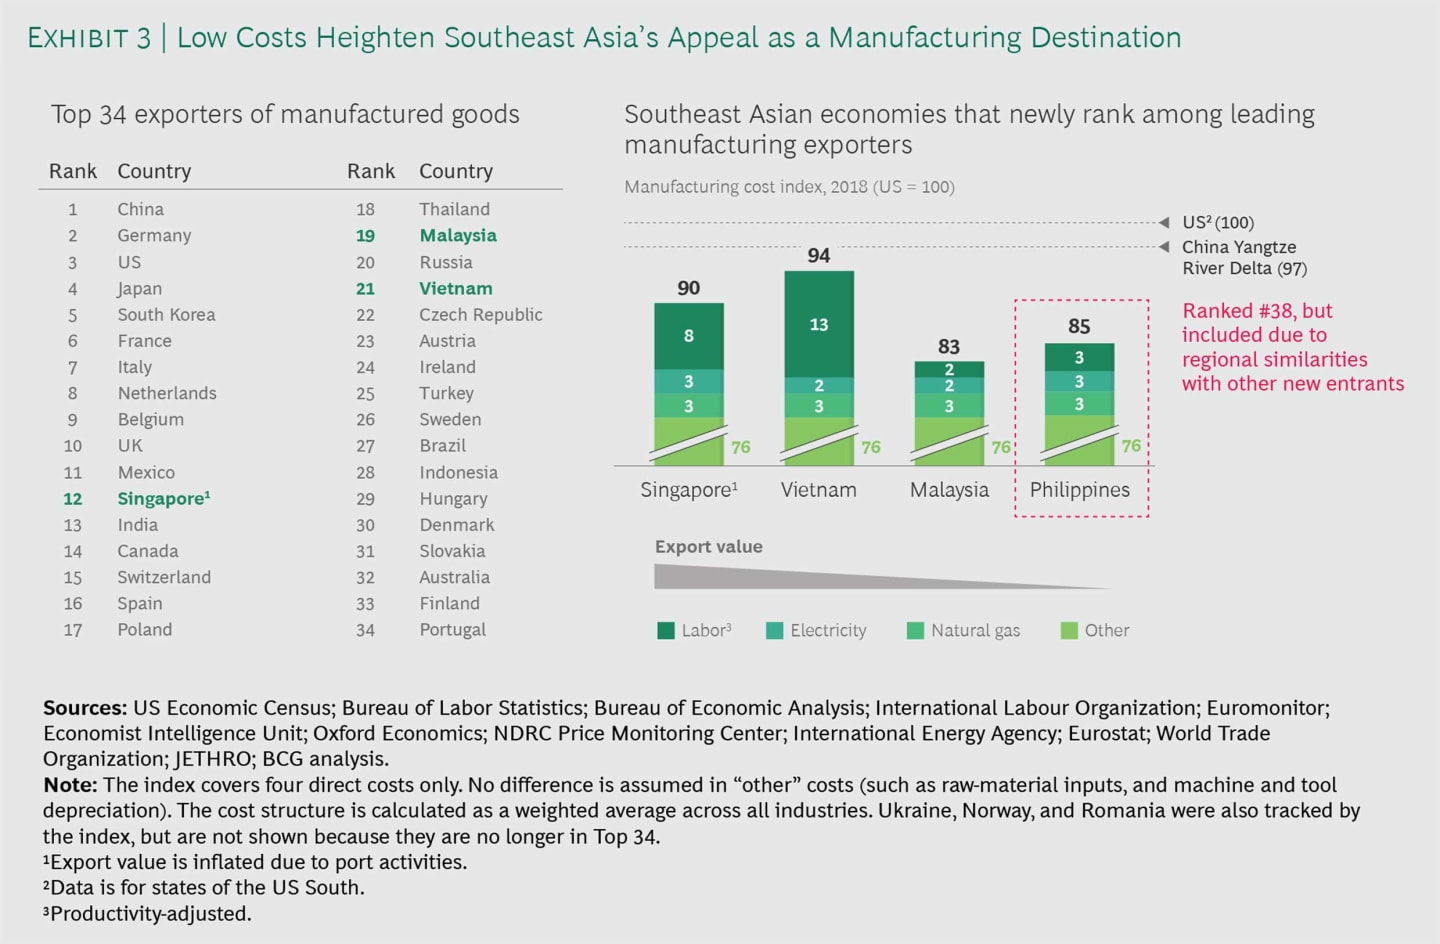 Low Costs Heighten South East Asia's Appeal as a Manufacturing Destination